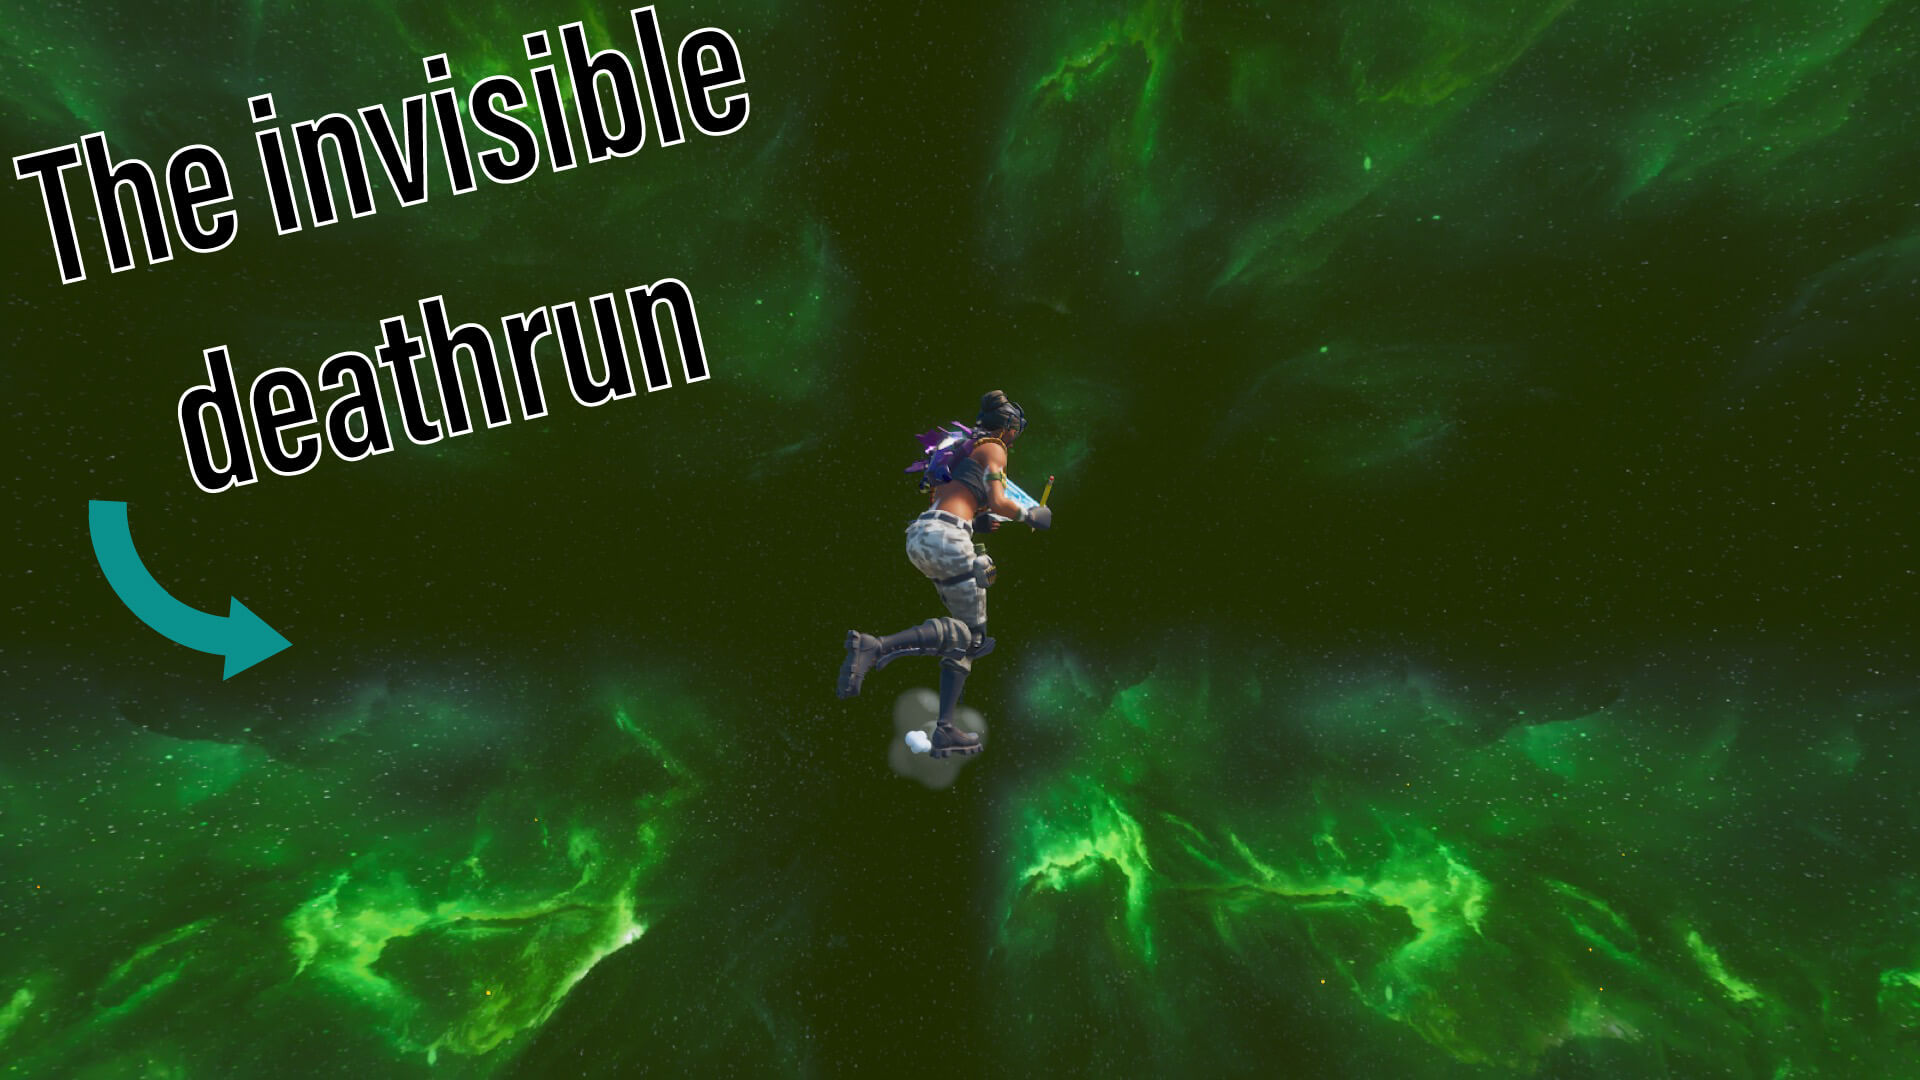 THE INVISABLE DEATHRUN!